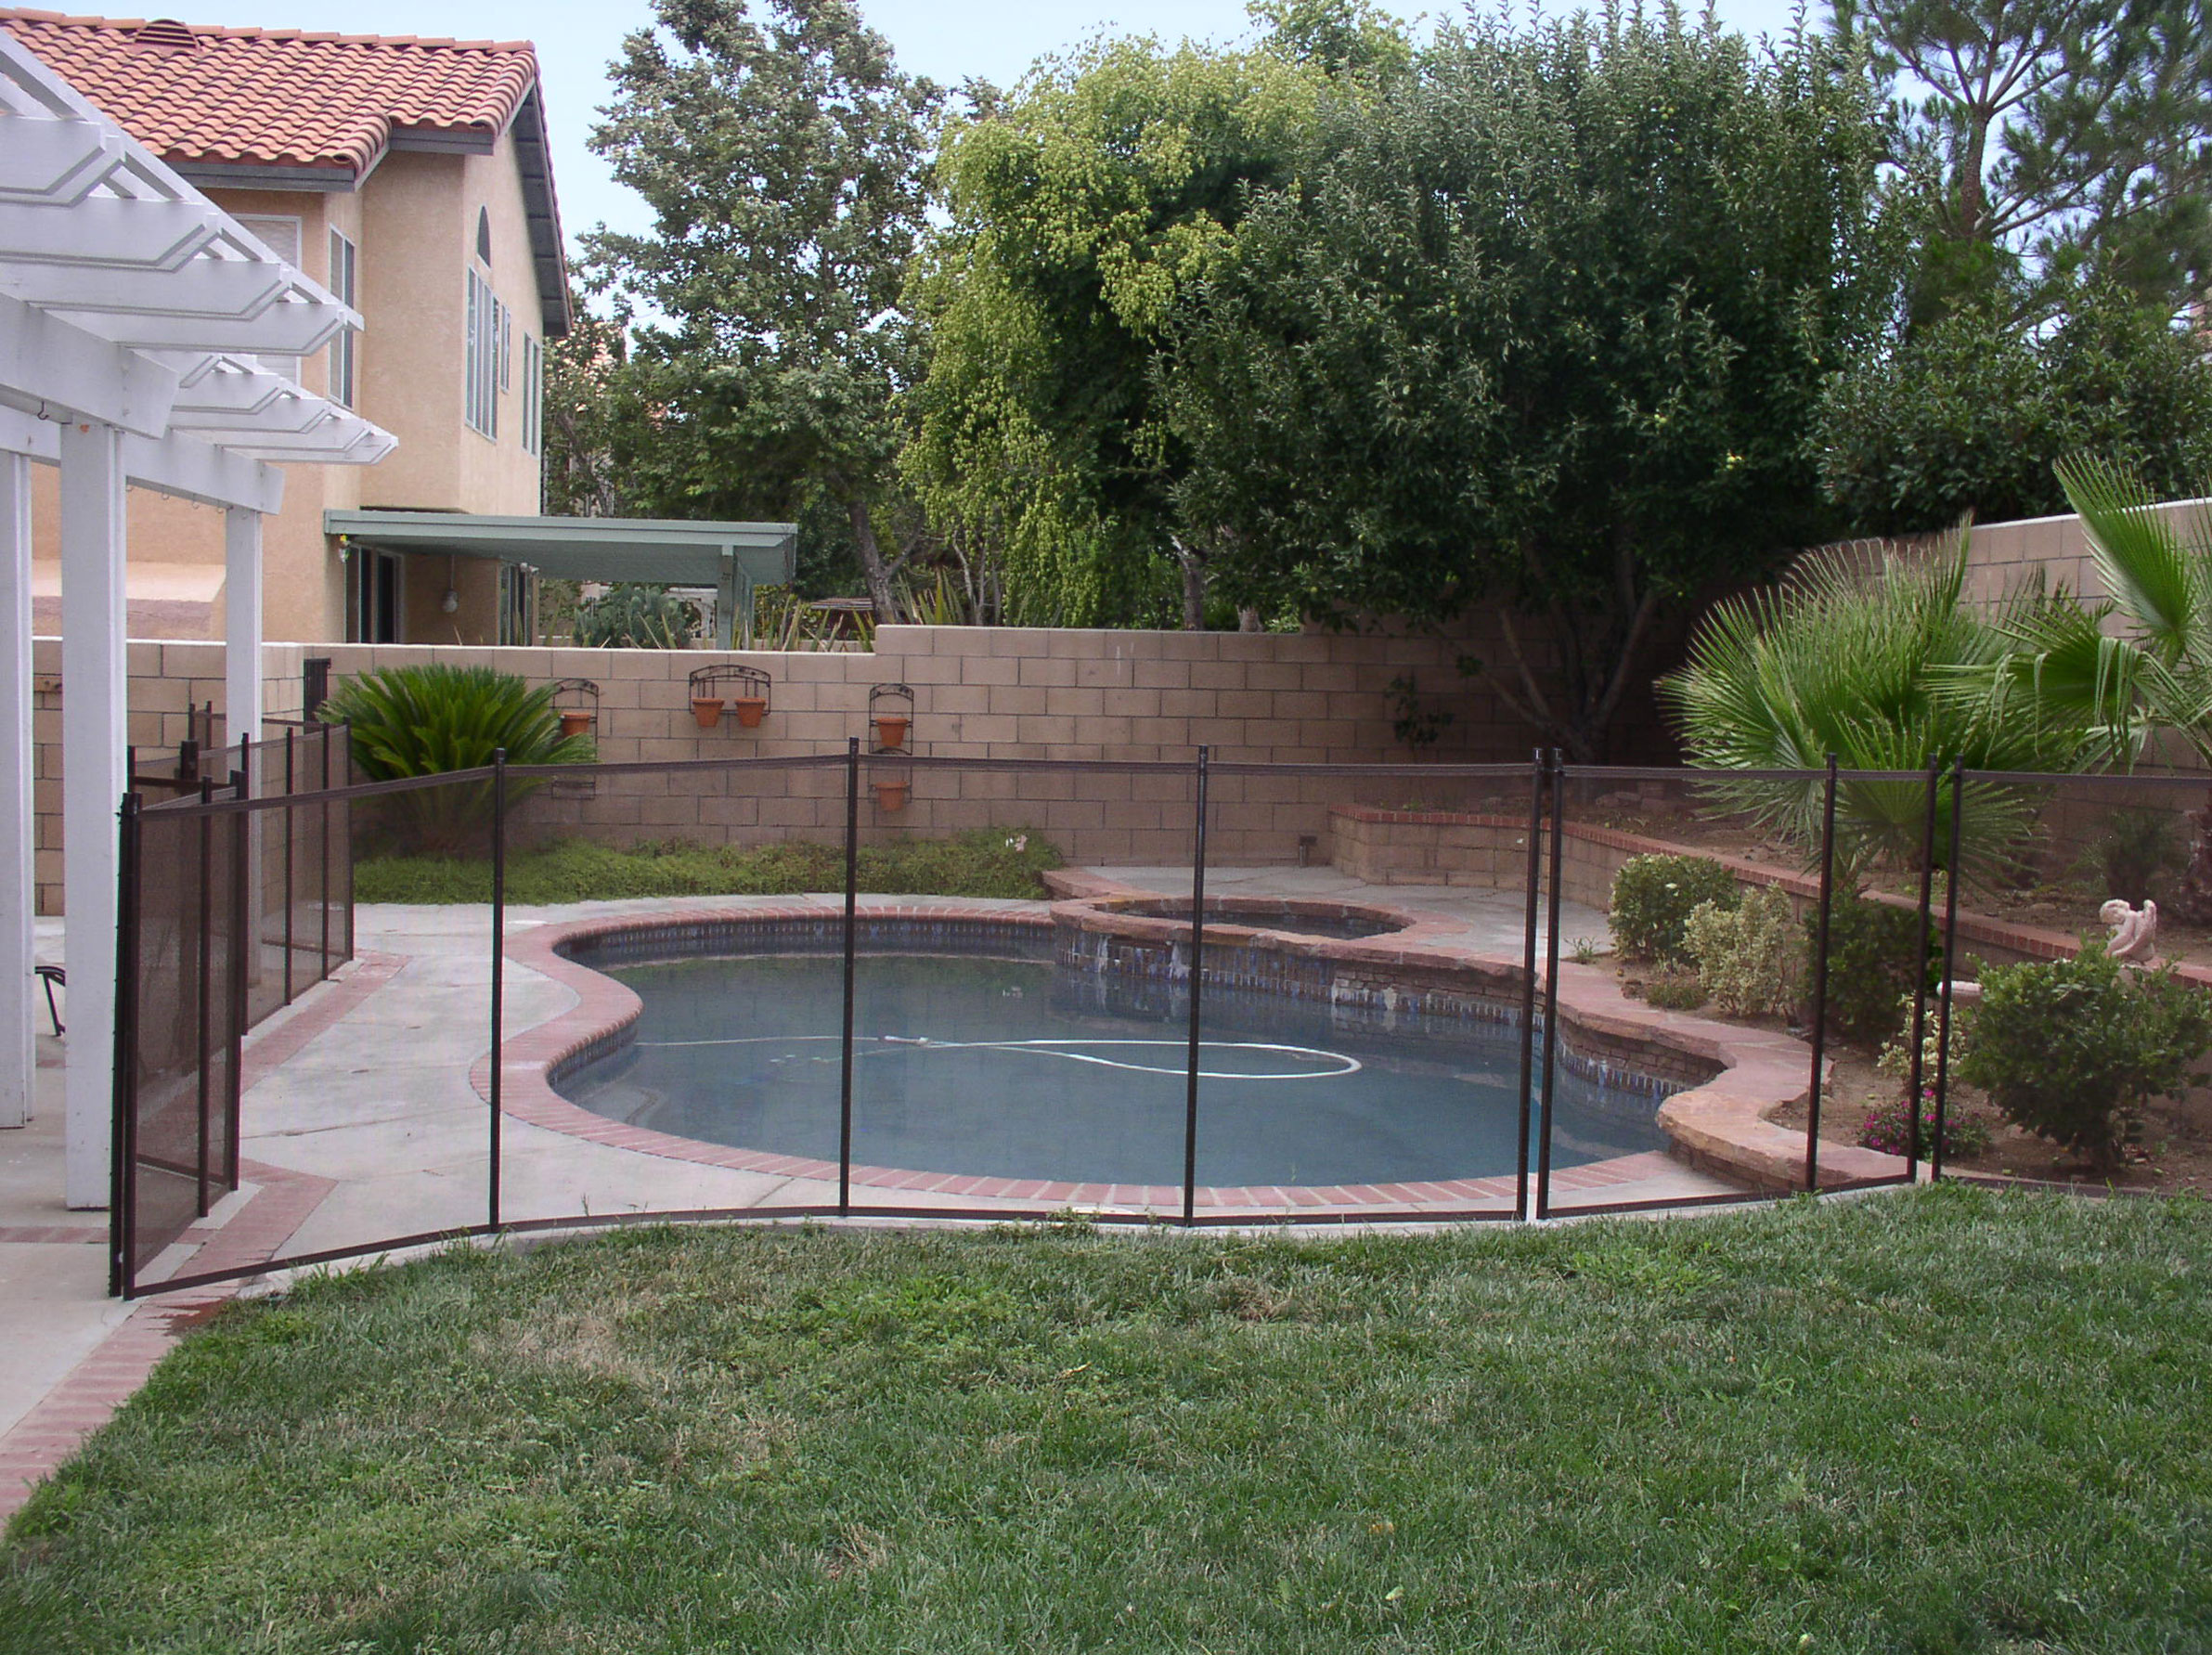 Best Backyard Pool For Dogs : addition to being the best choice from a safety perspective, mesh pool